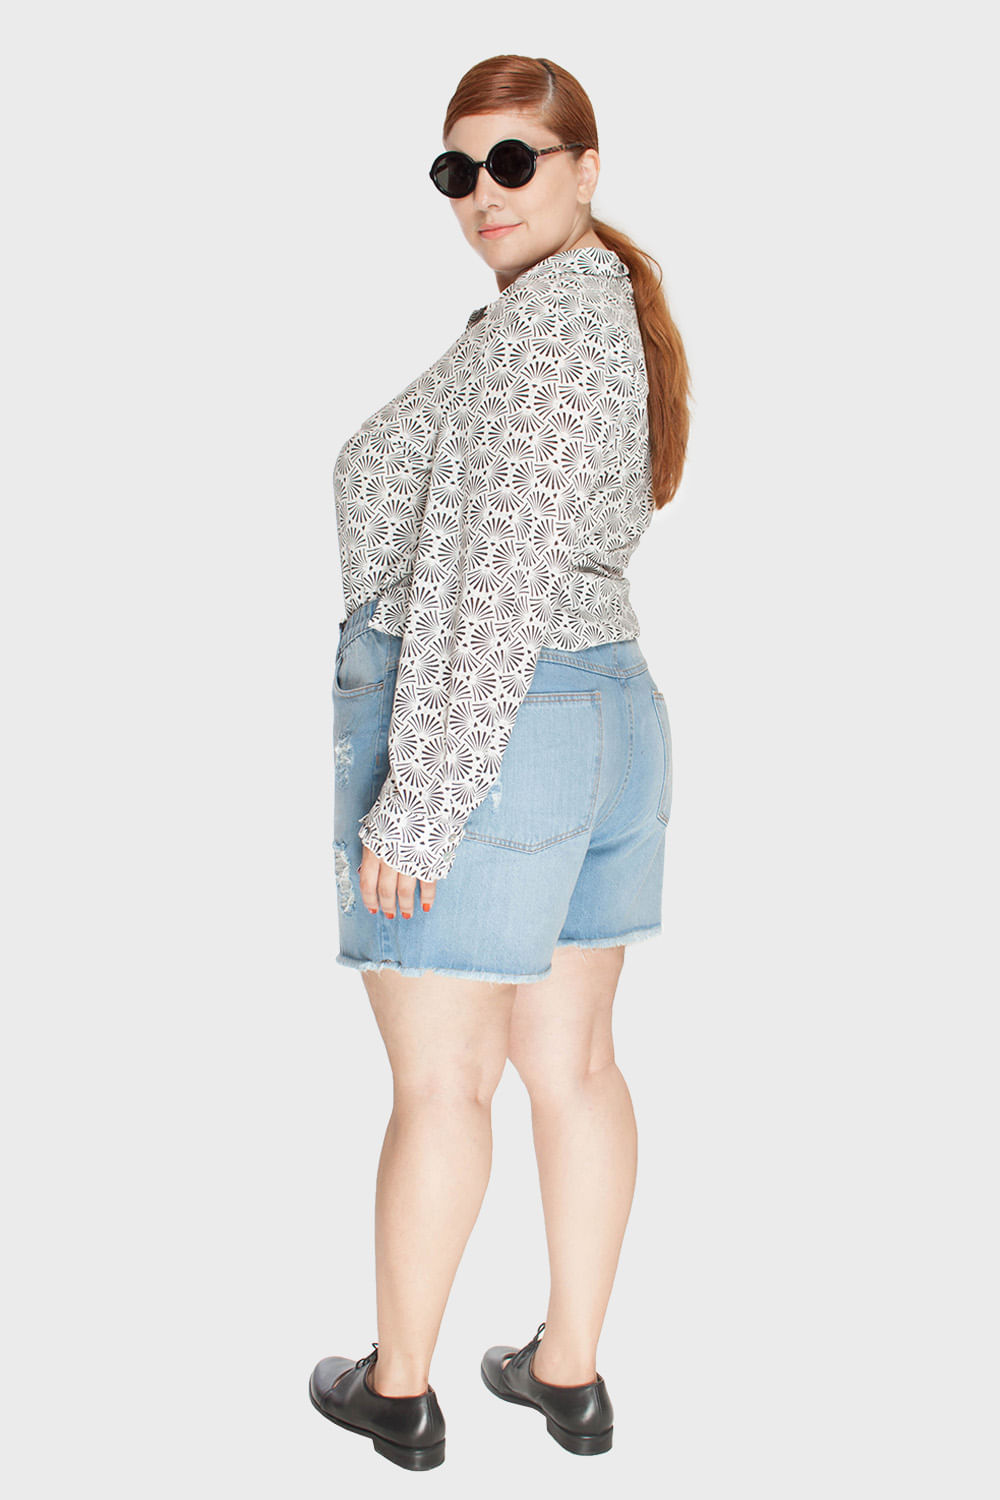 Shorts-Jeans-Upcycle-Delave-Plus-Size_3